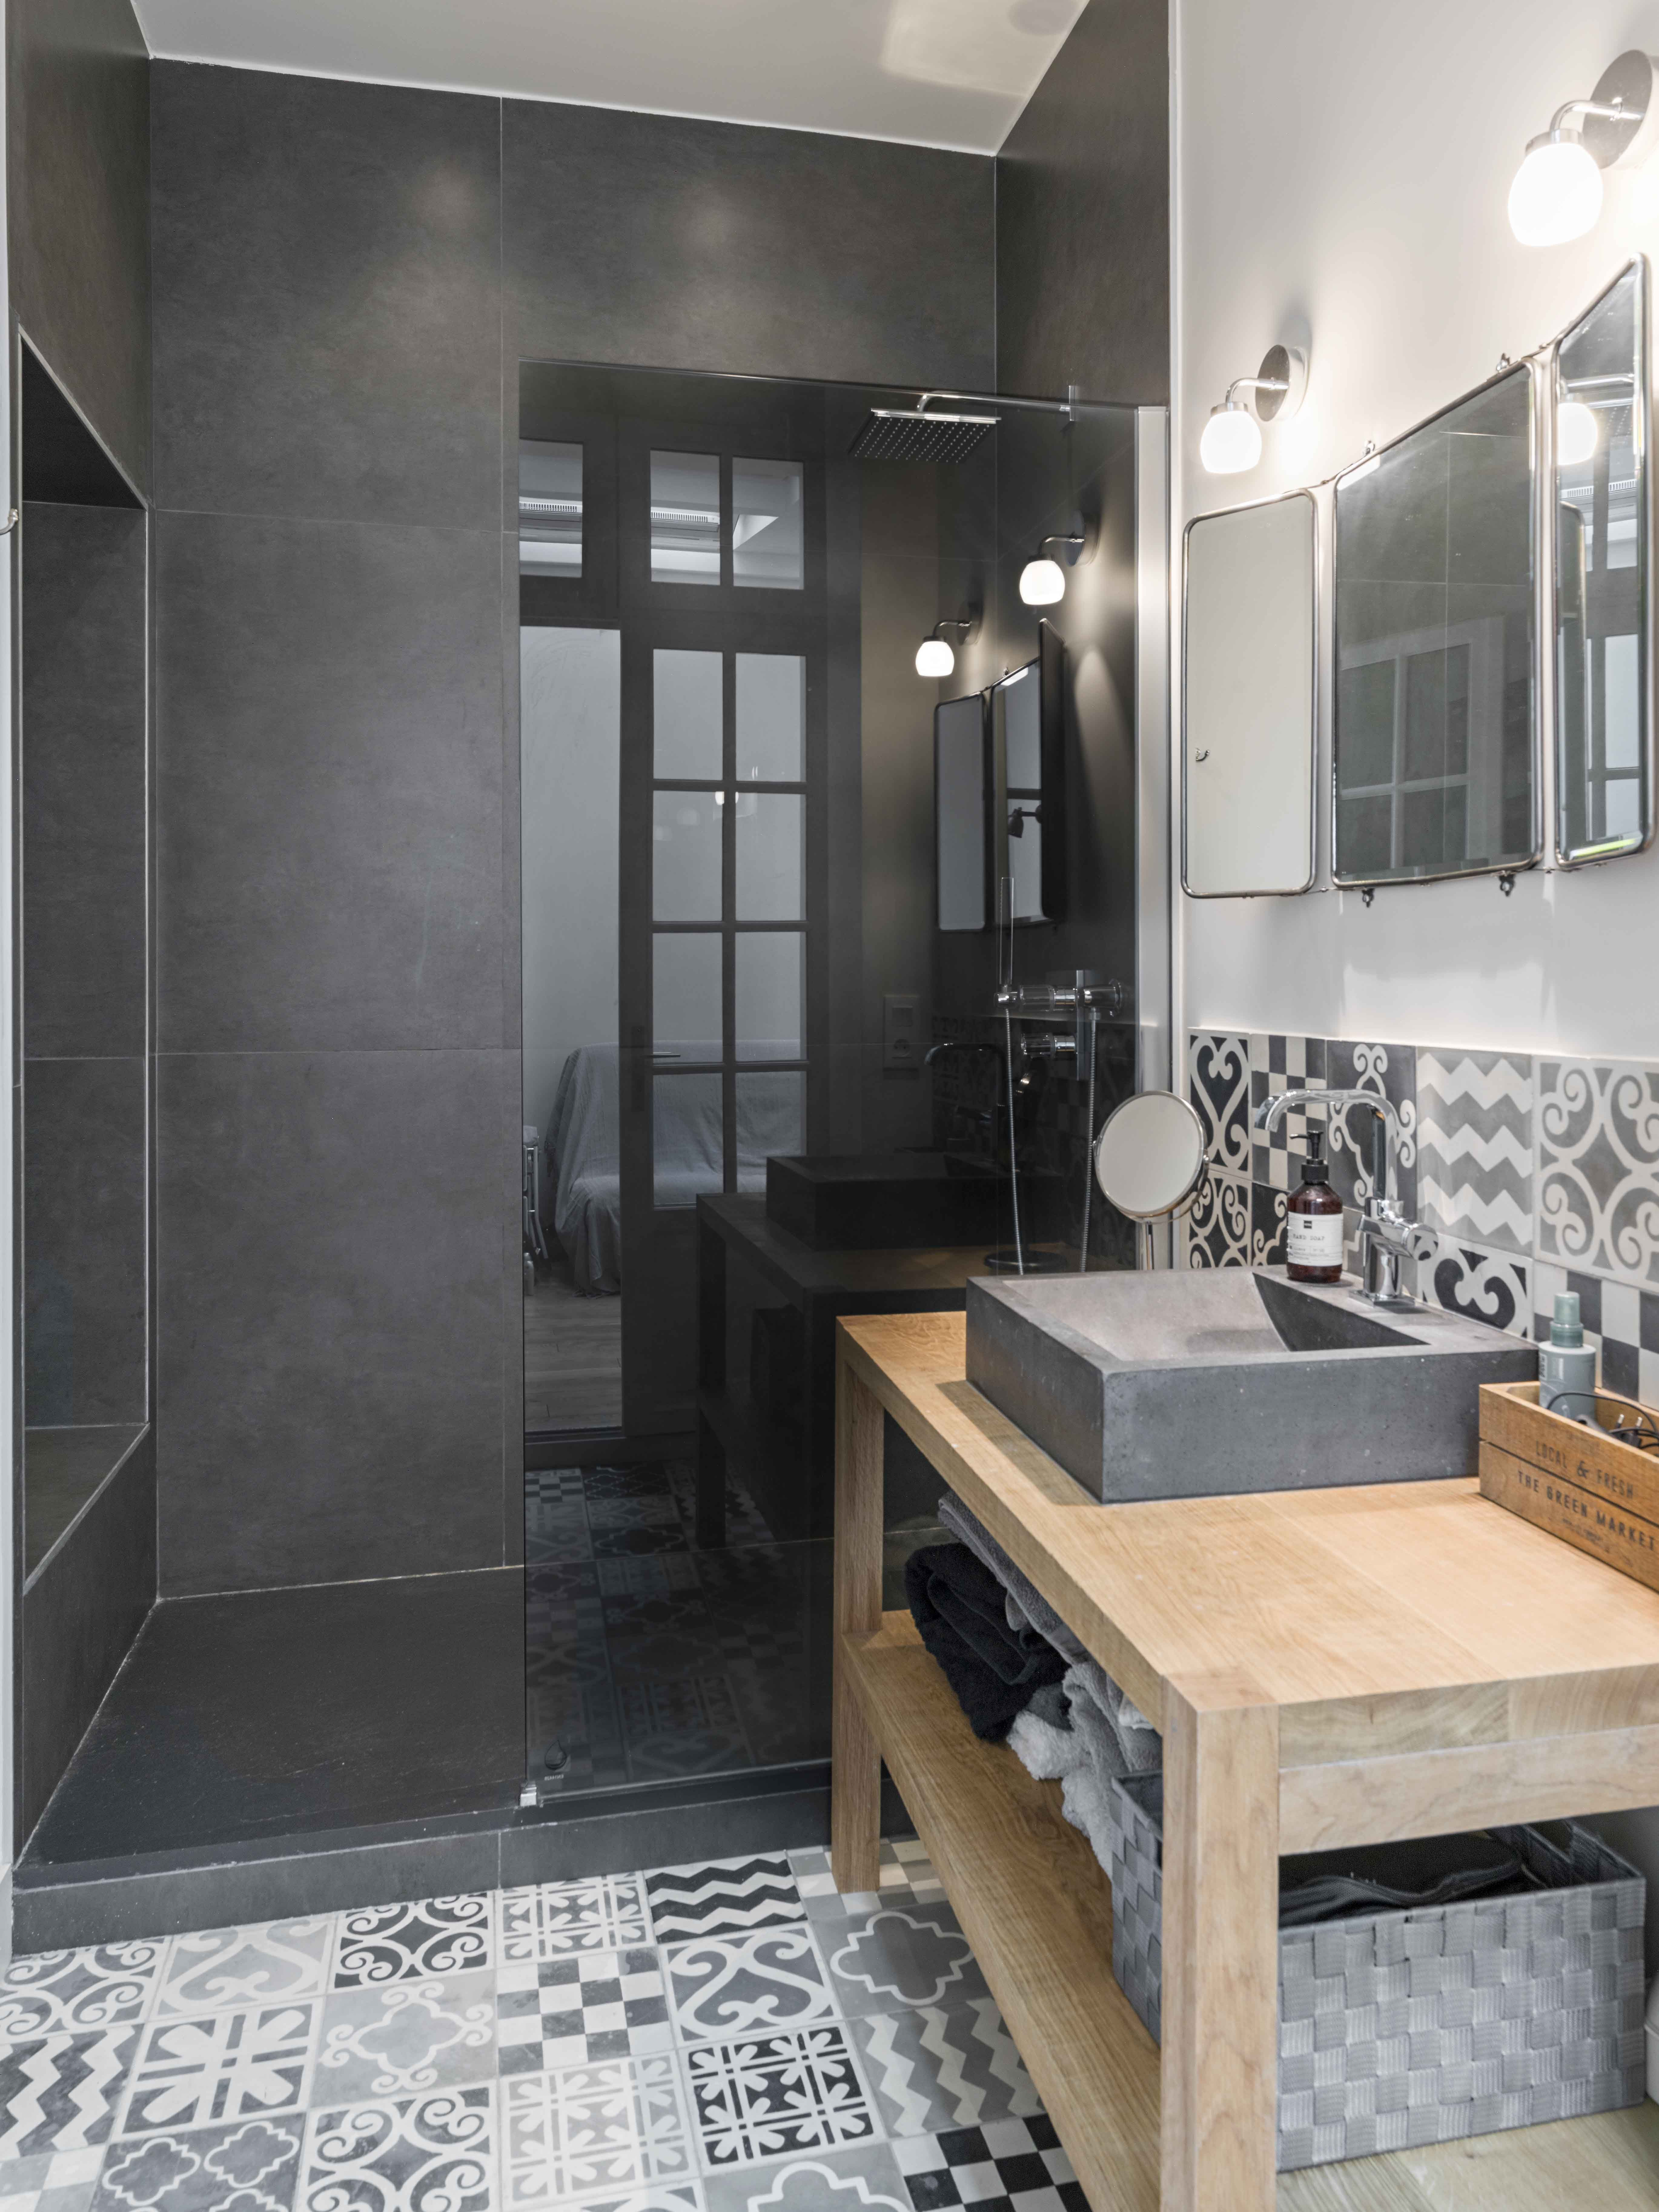 shower home depot install to ideas how in size plumbing concrete system of rough bathroom large full pump a sewage breaking drain without basement ejector